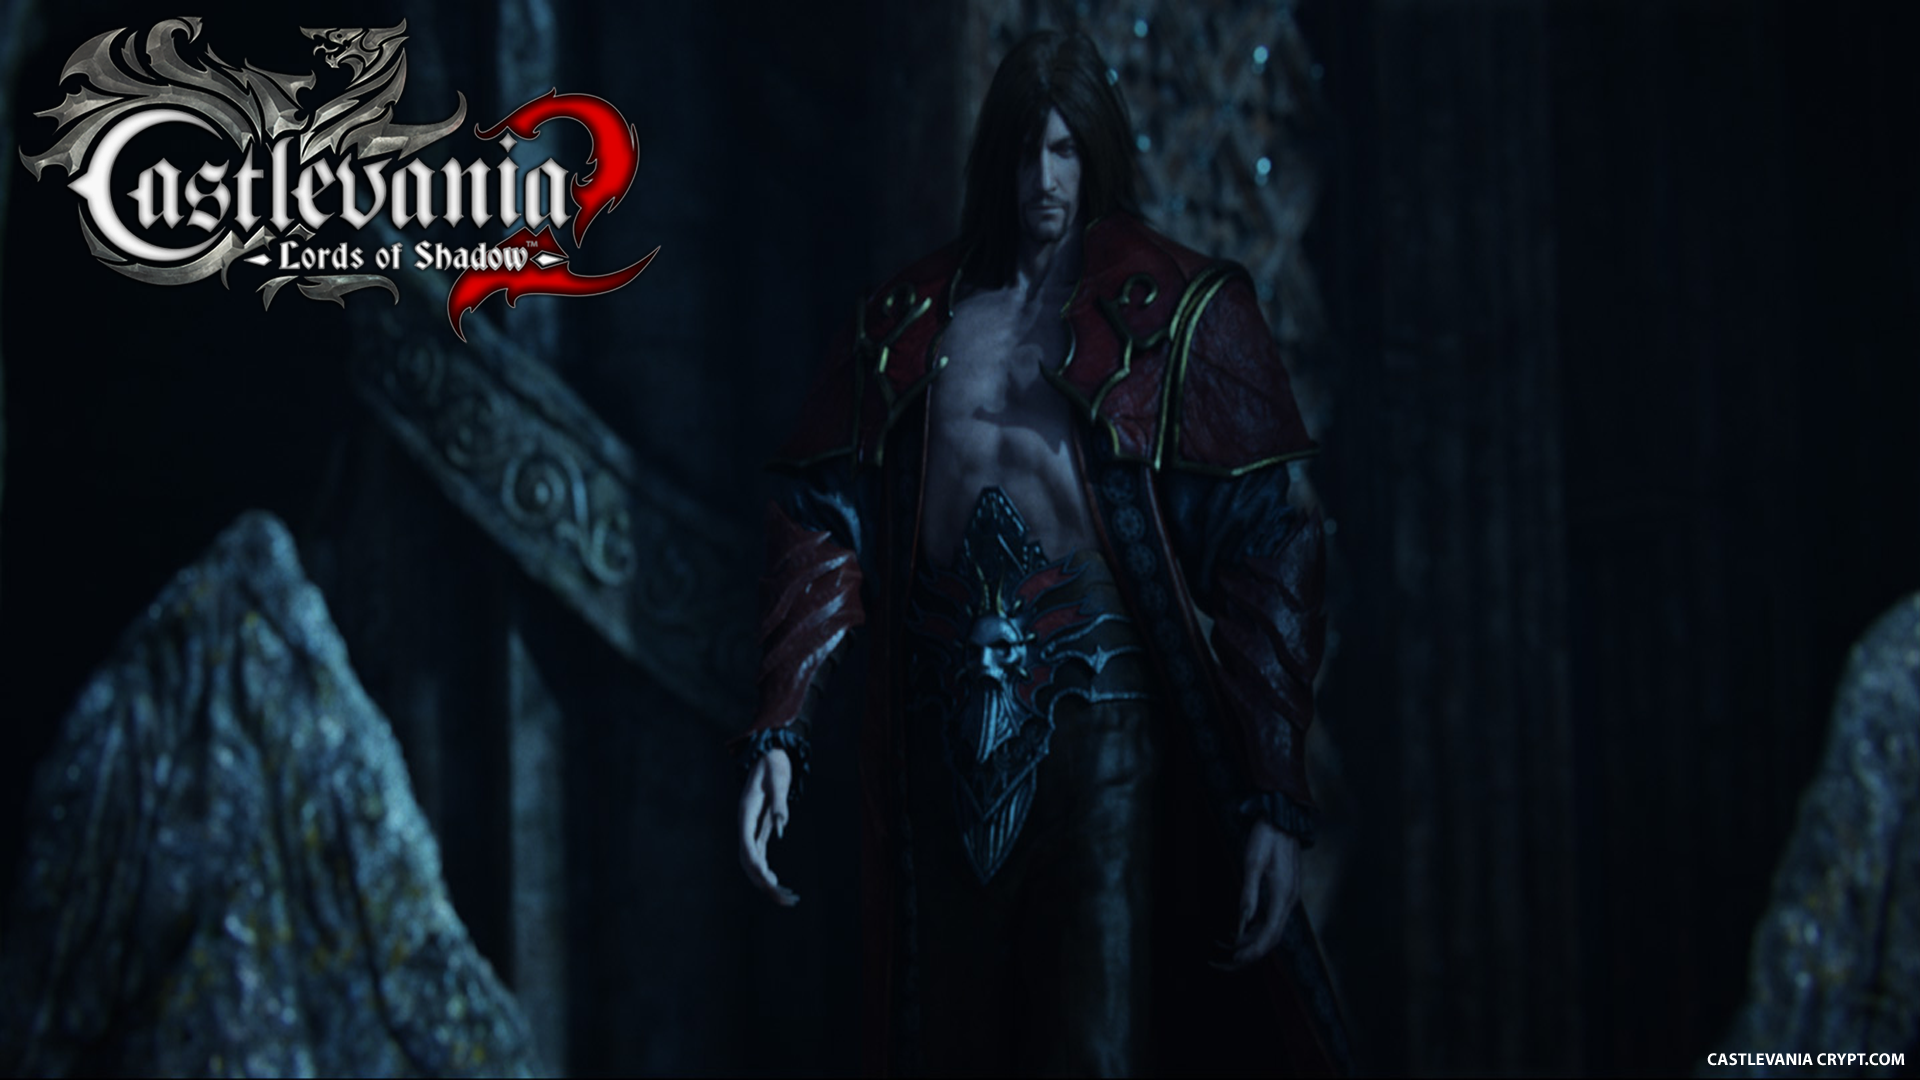 castlevania lords of shadow 2 hd wallpaper background image